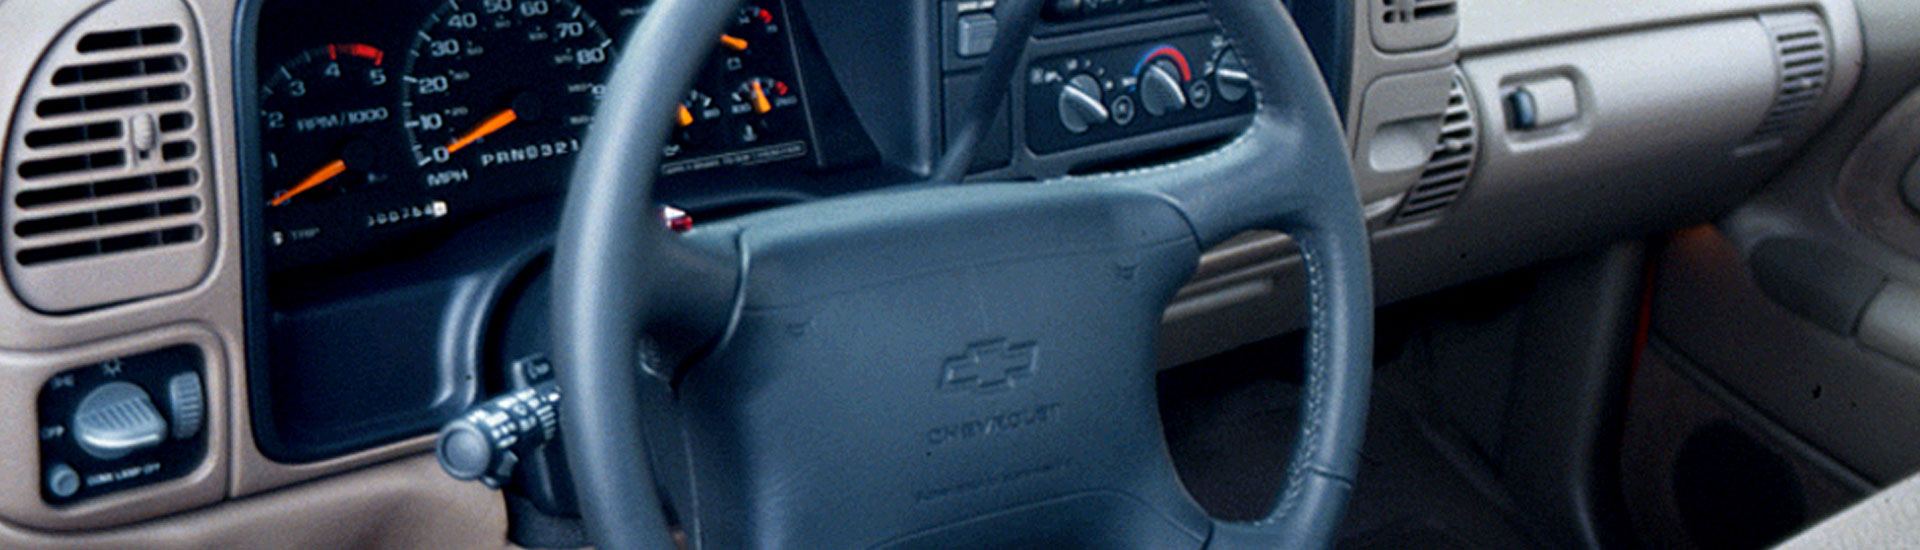 Chevrolet CK Dash Kits